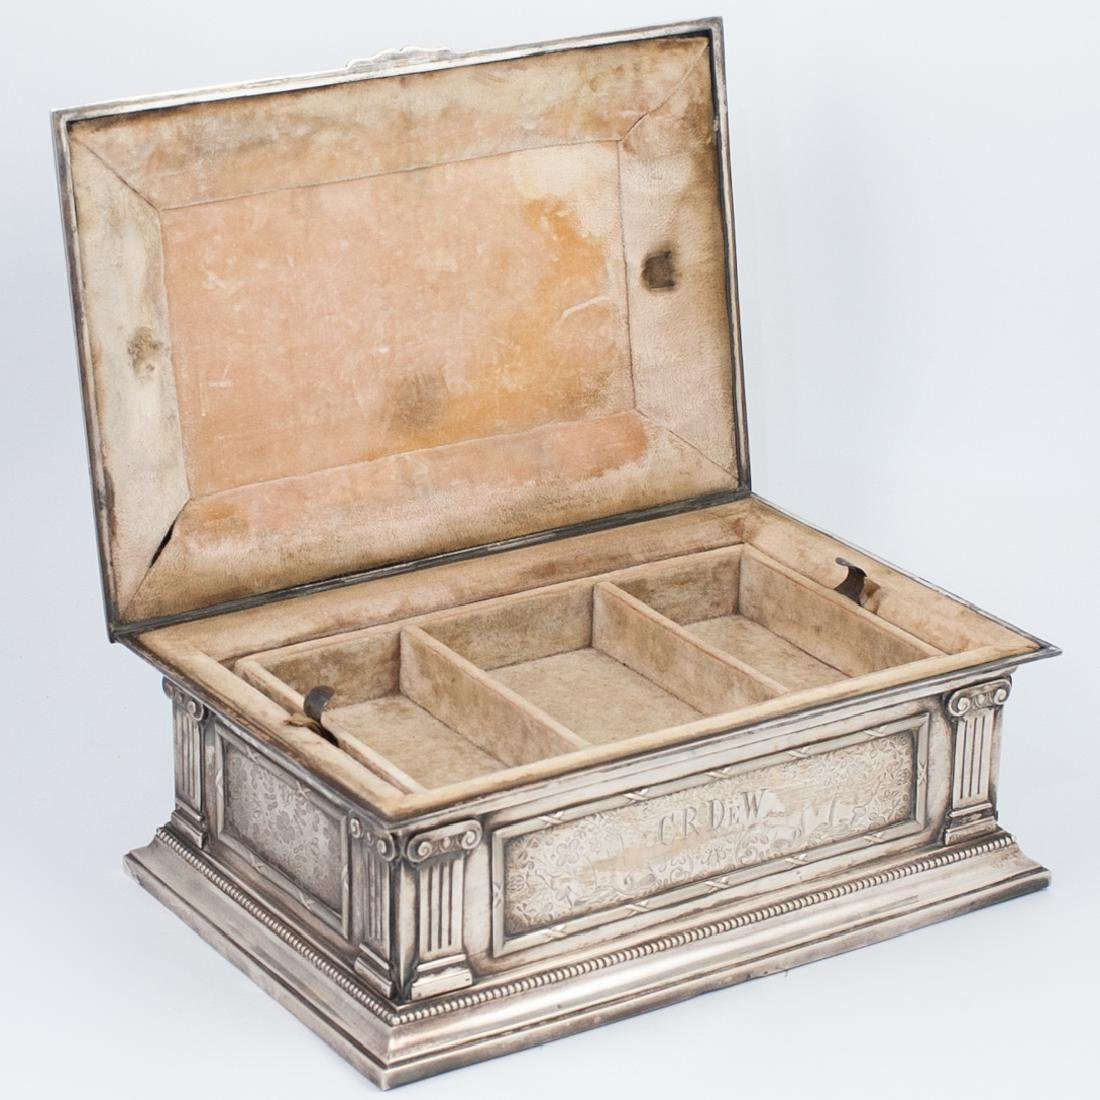 Antal Bachruch Antique Silver Jewelry Box - 10